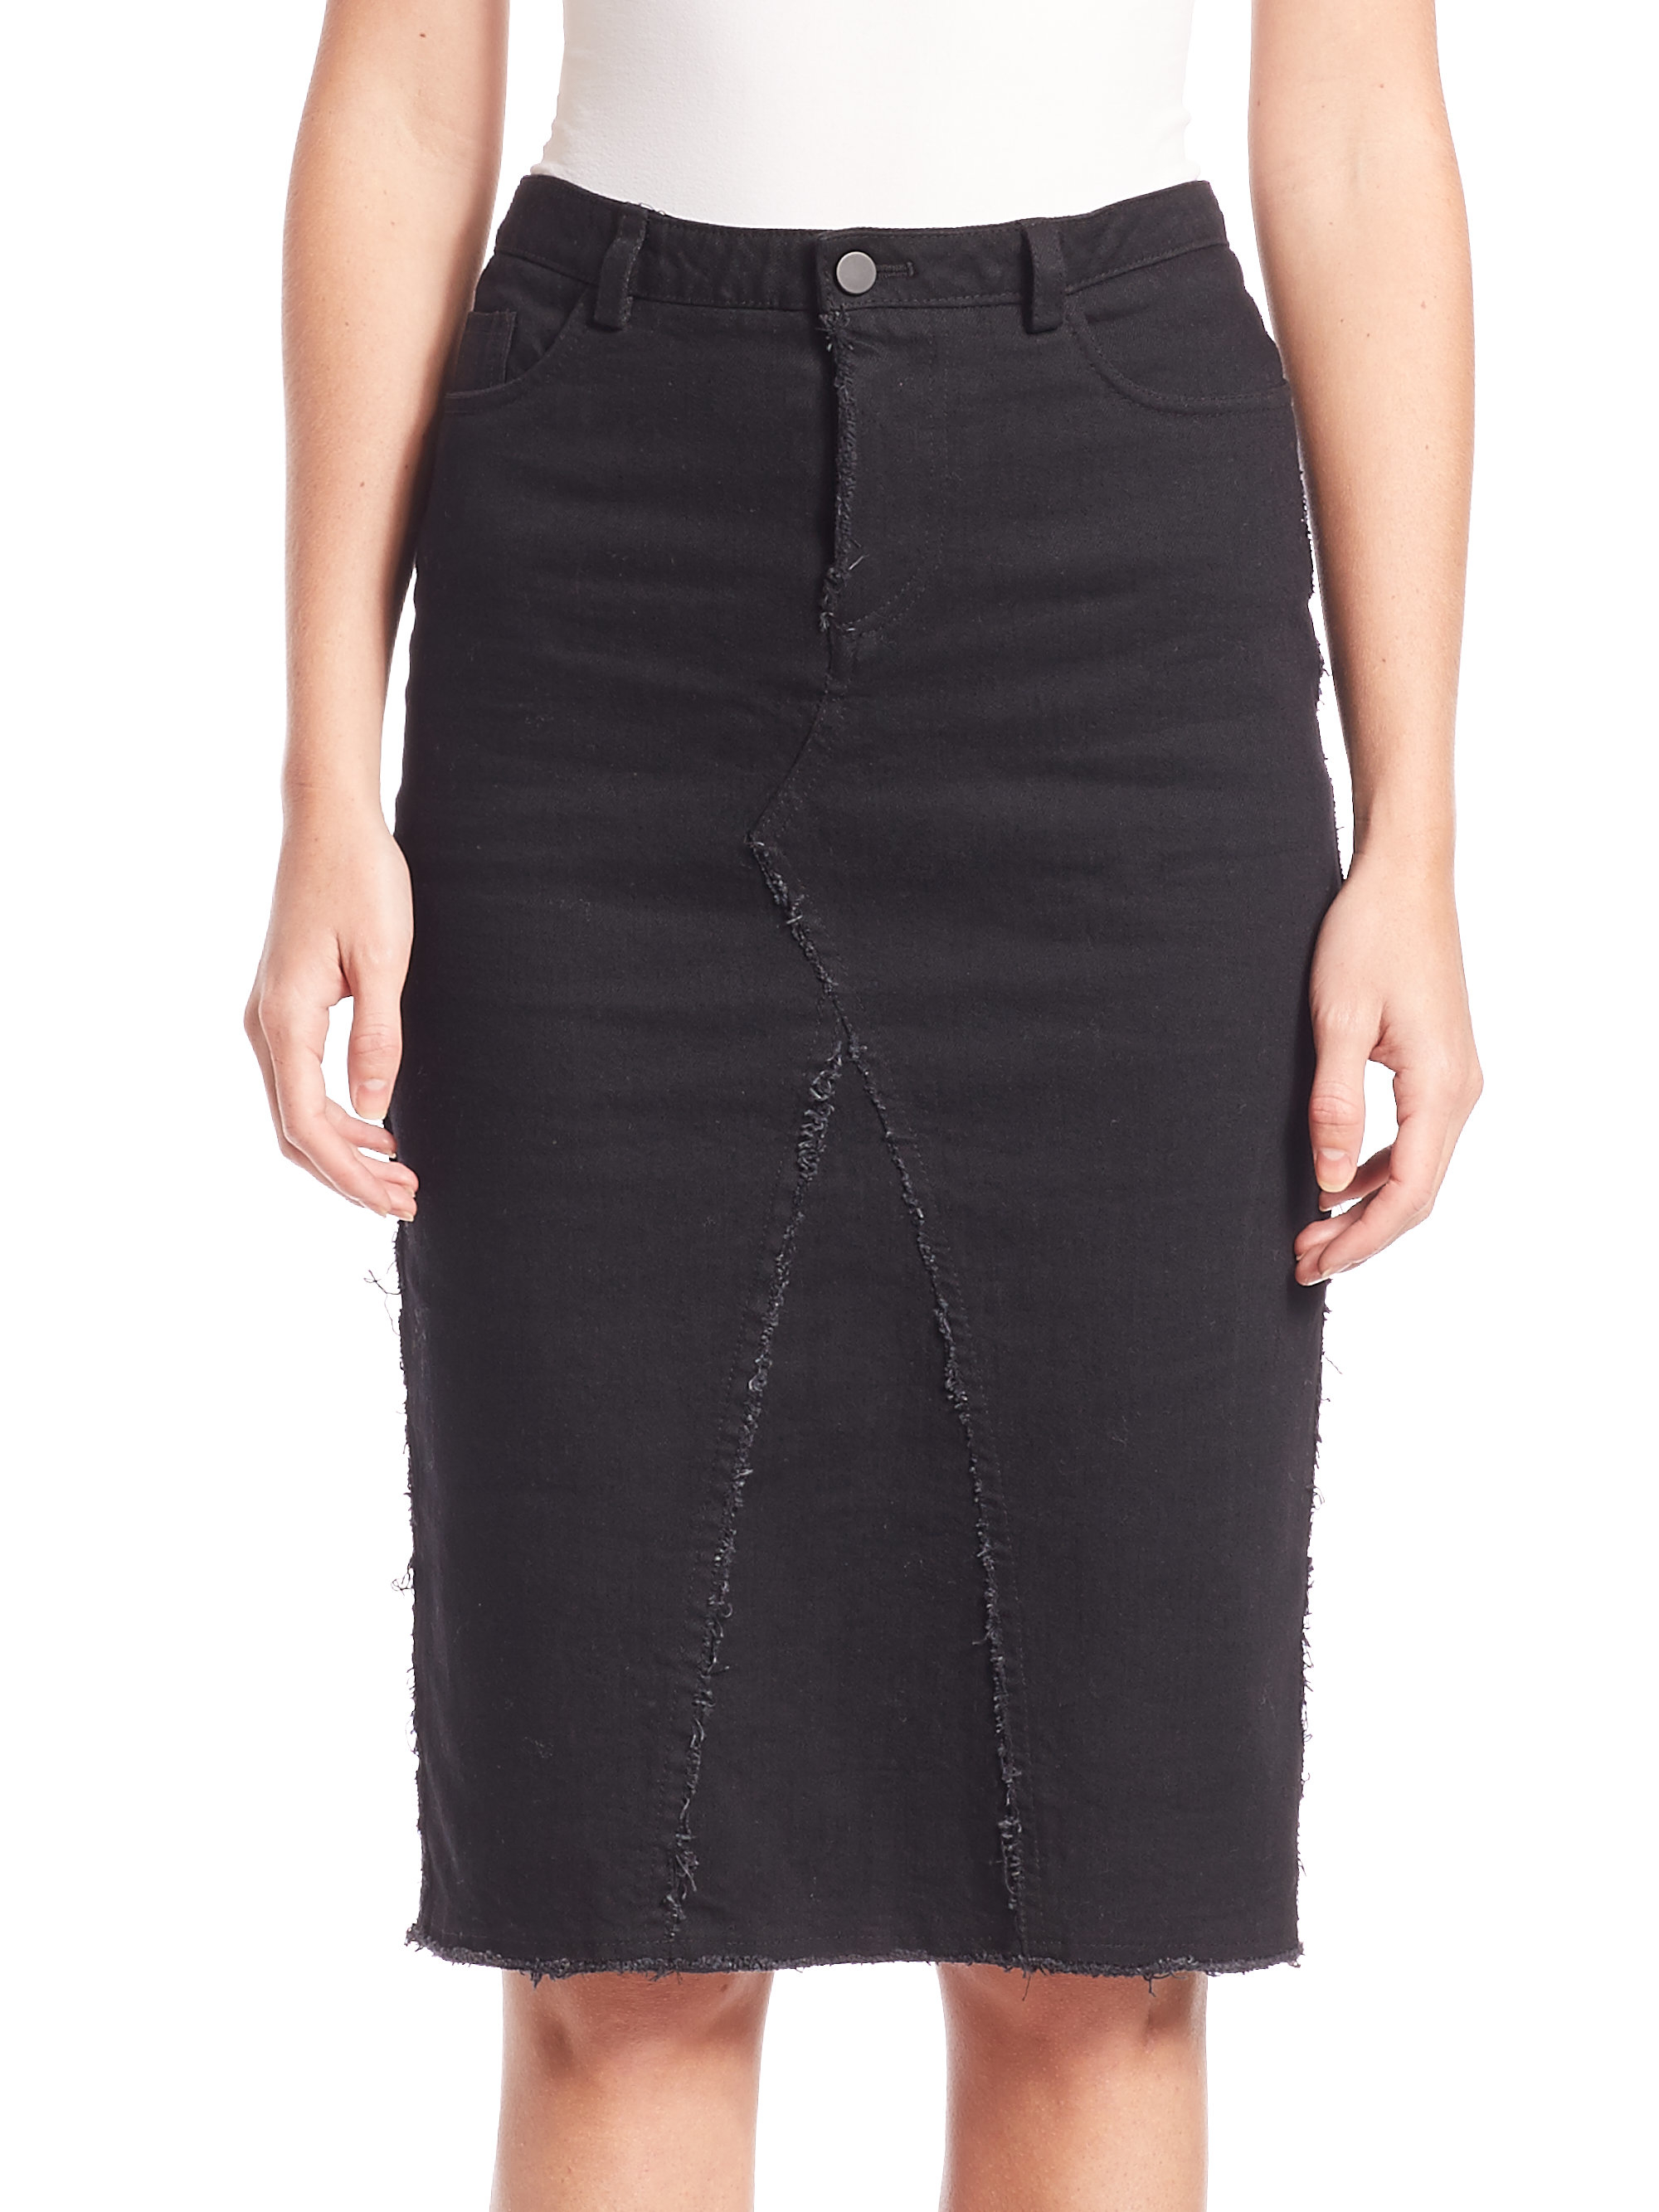 Atm Frayed Denim Pencil Skirt in Black | Lyst